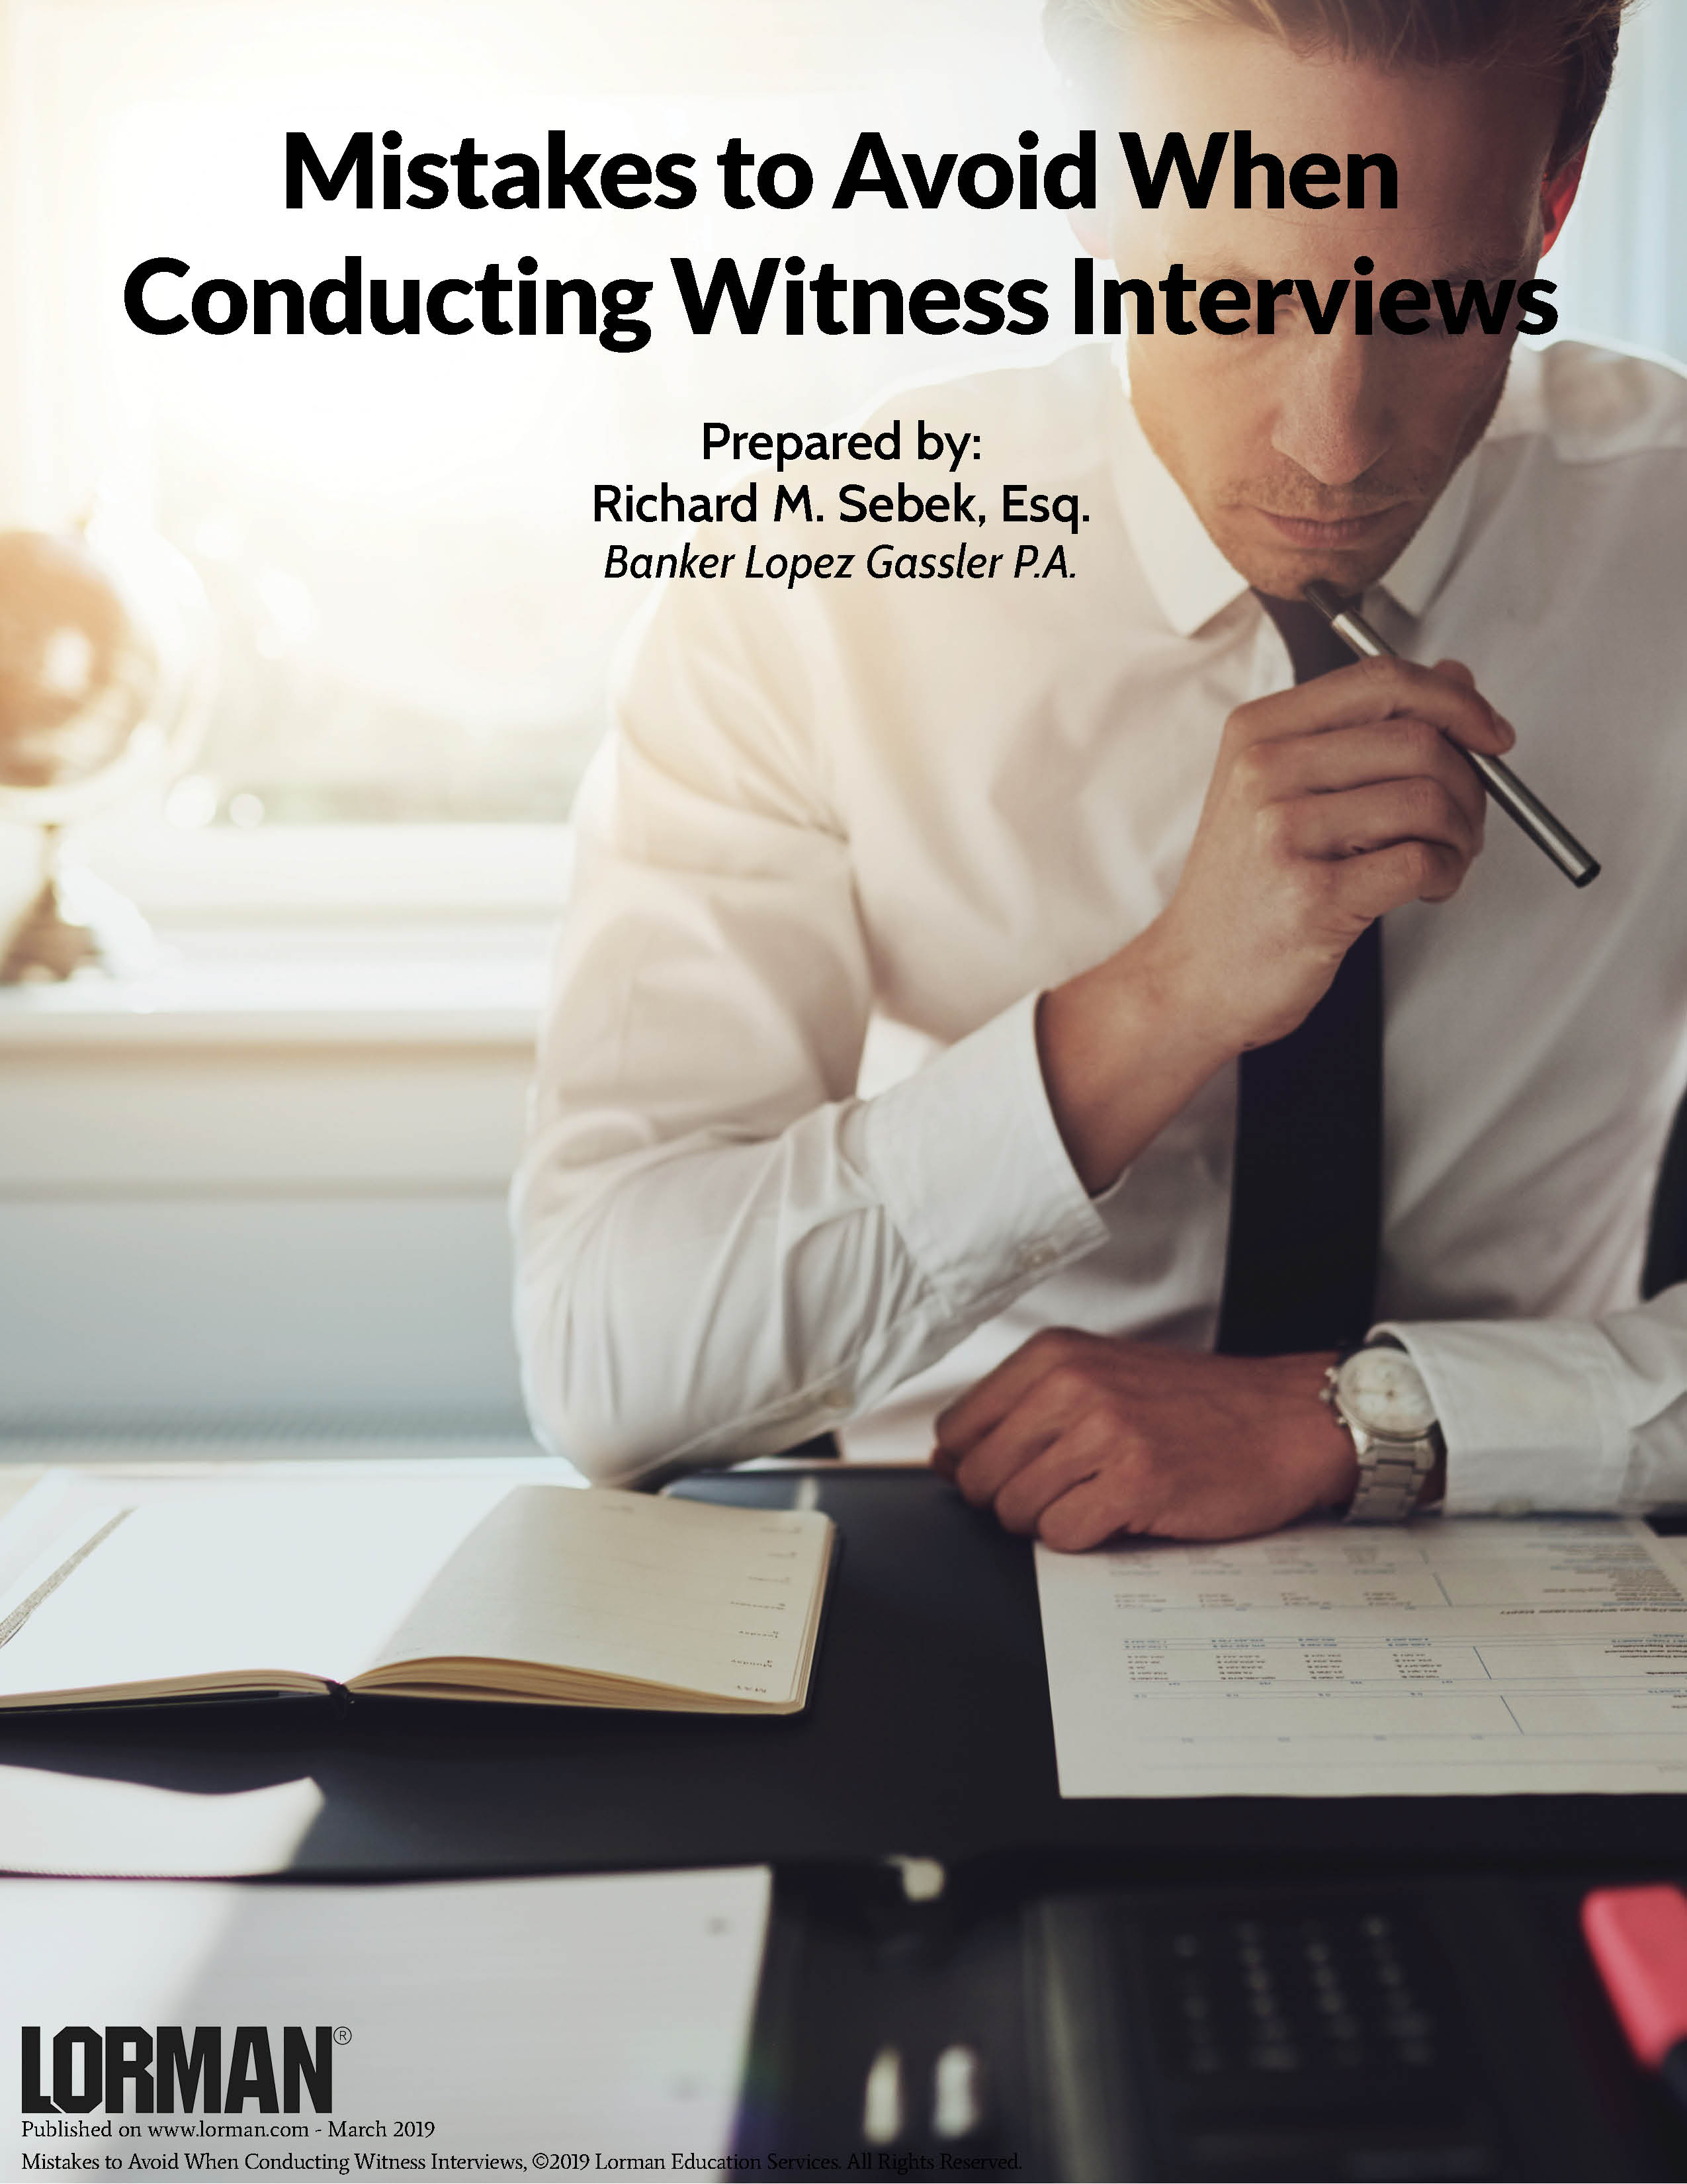 Mistakes to Avoid When Conducting Witness Interviews